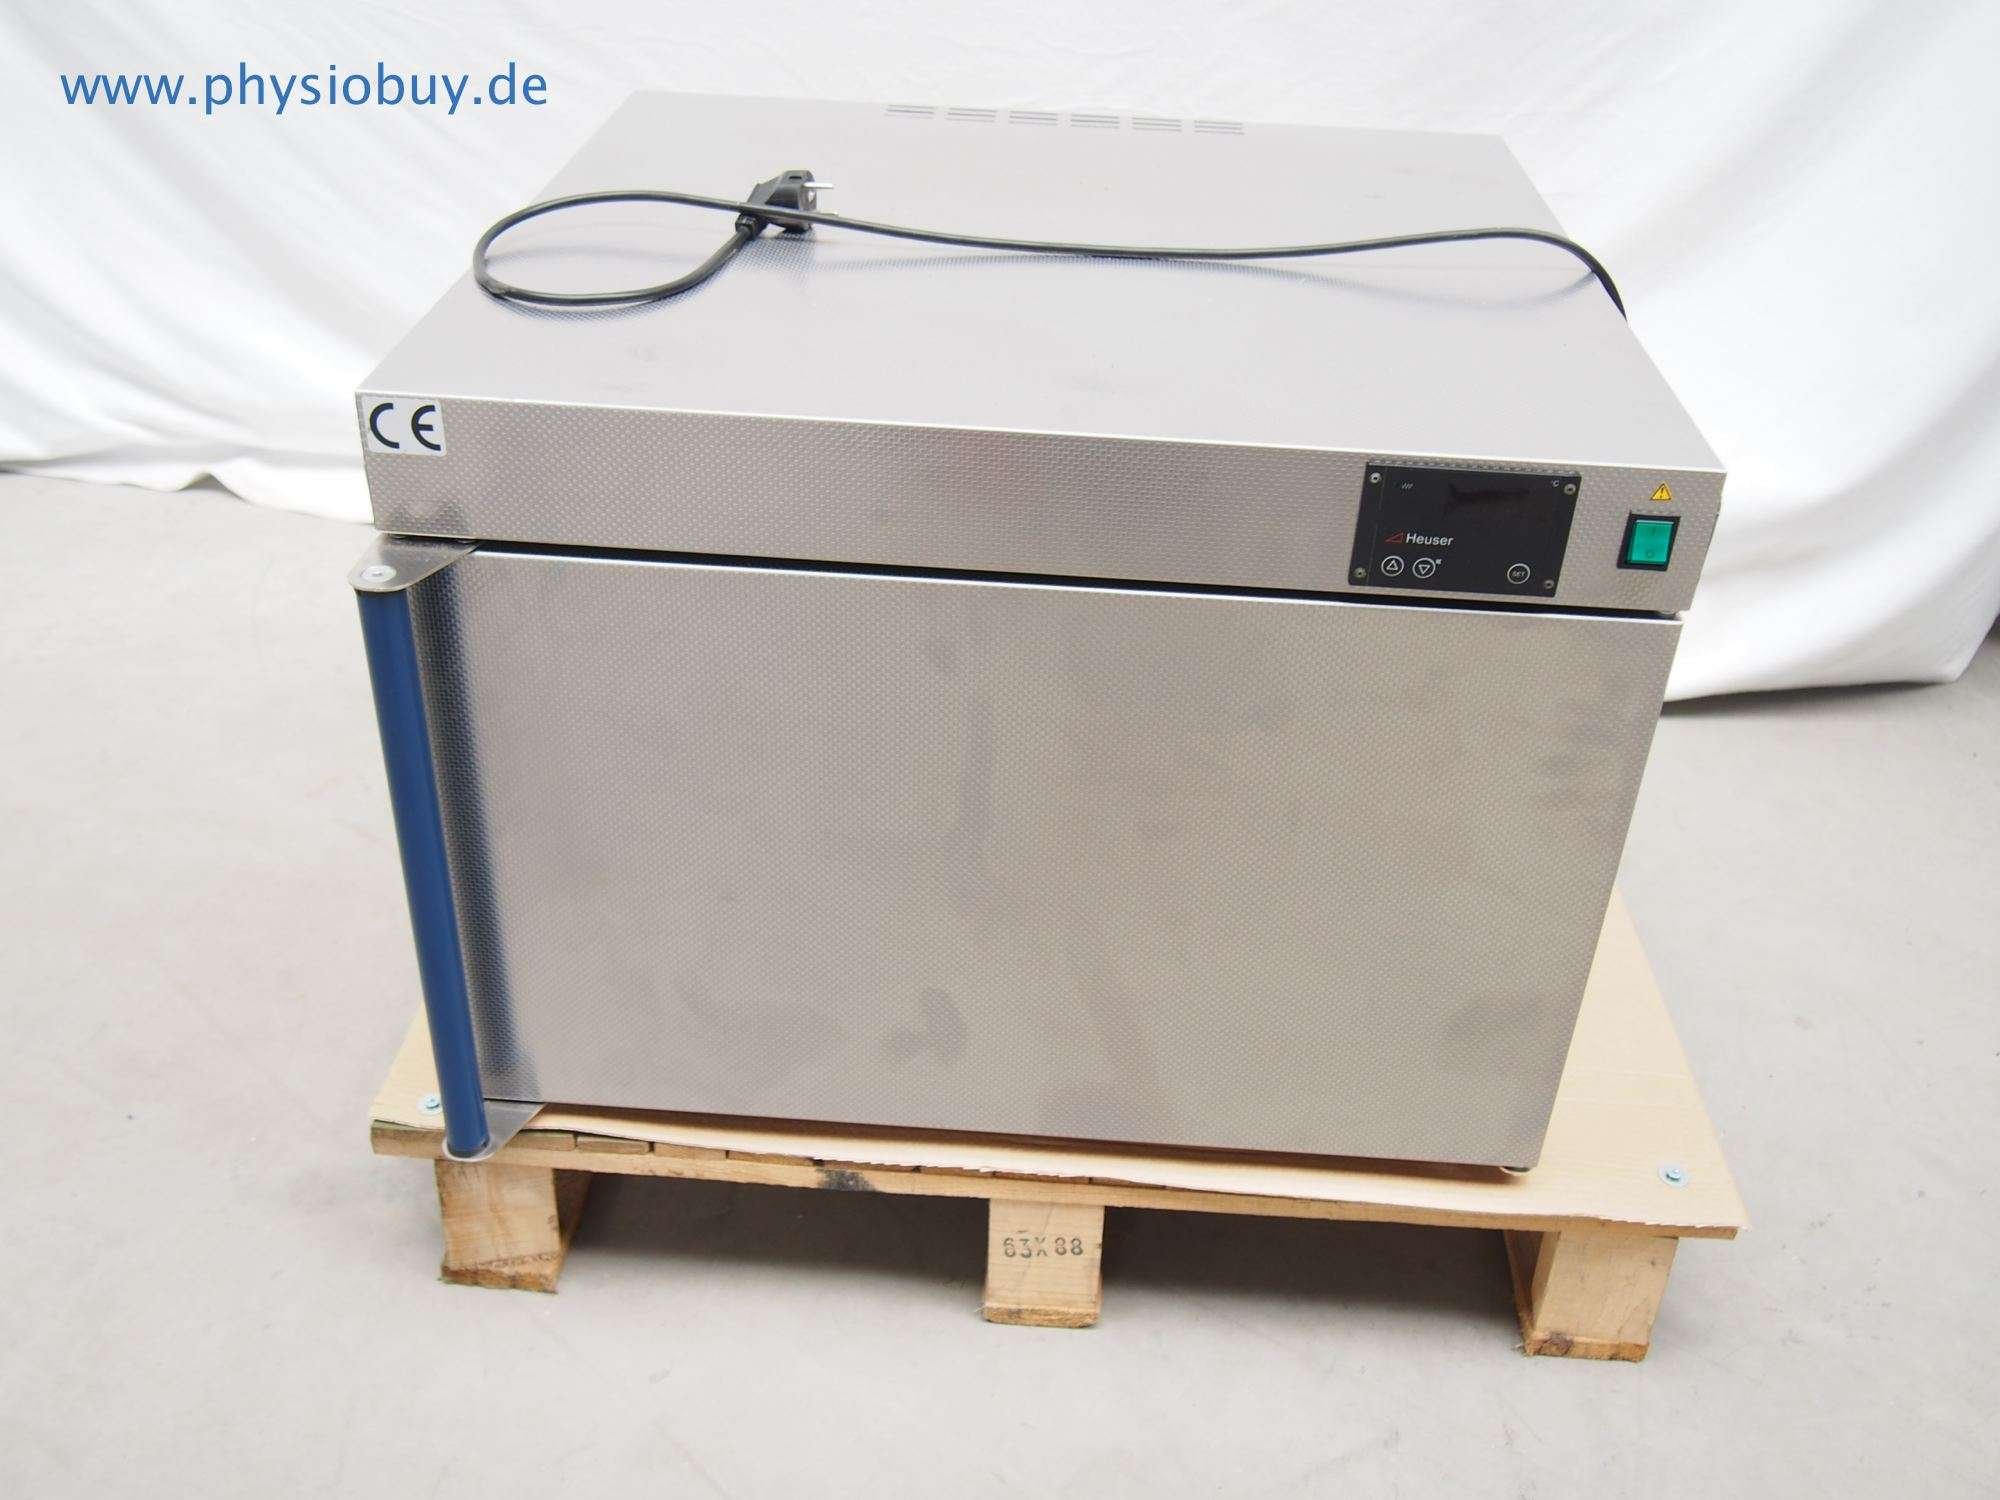 Warmhalteschrank Heuser | PHYSIOBUY